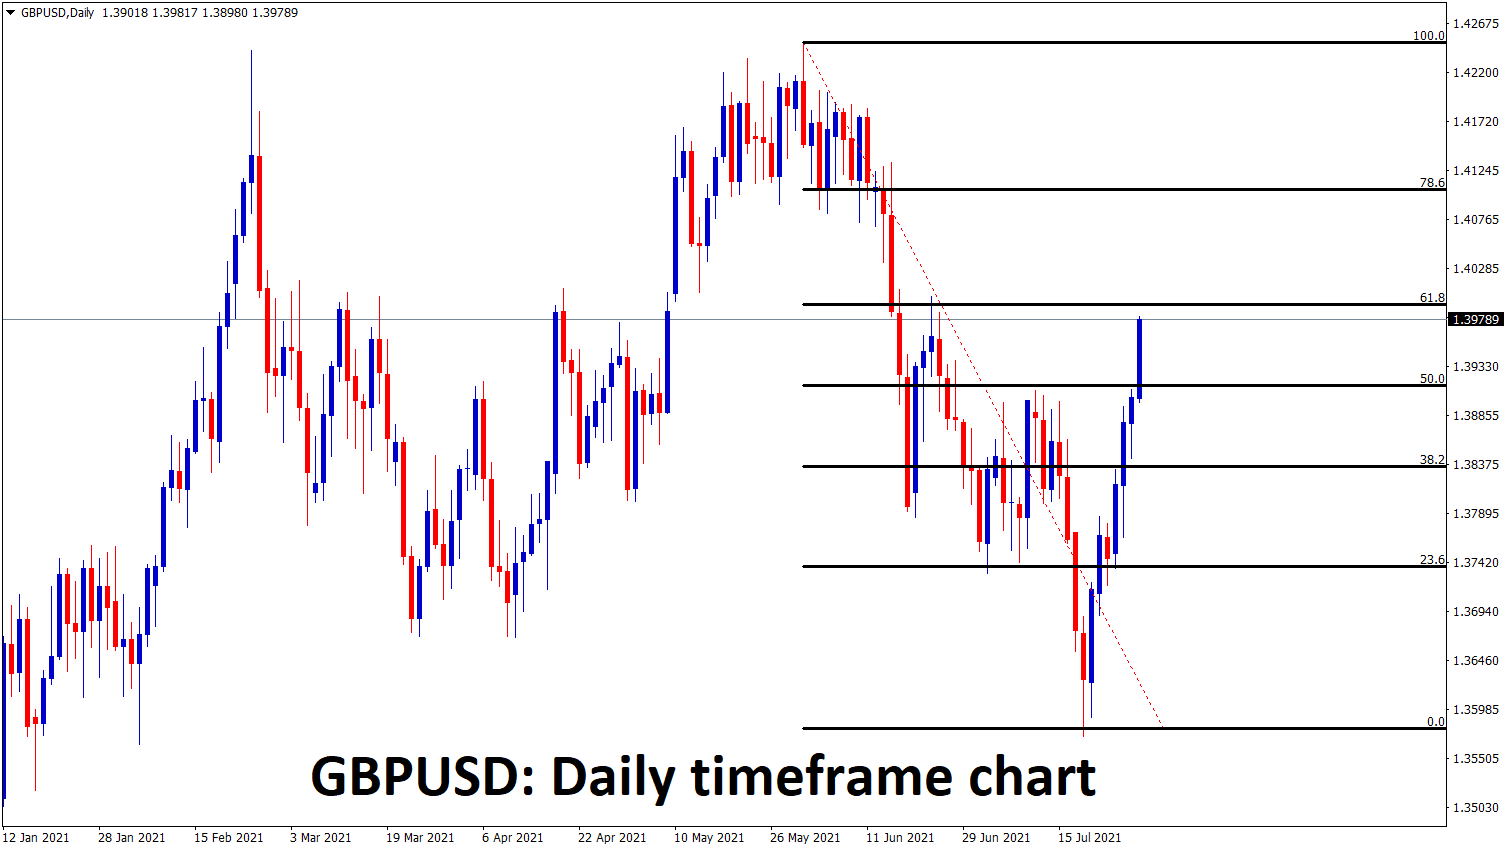 GBPUSD is shooting up without much retracements going to reach 61.8 retracement zone